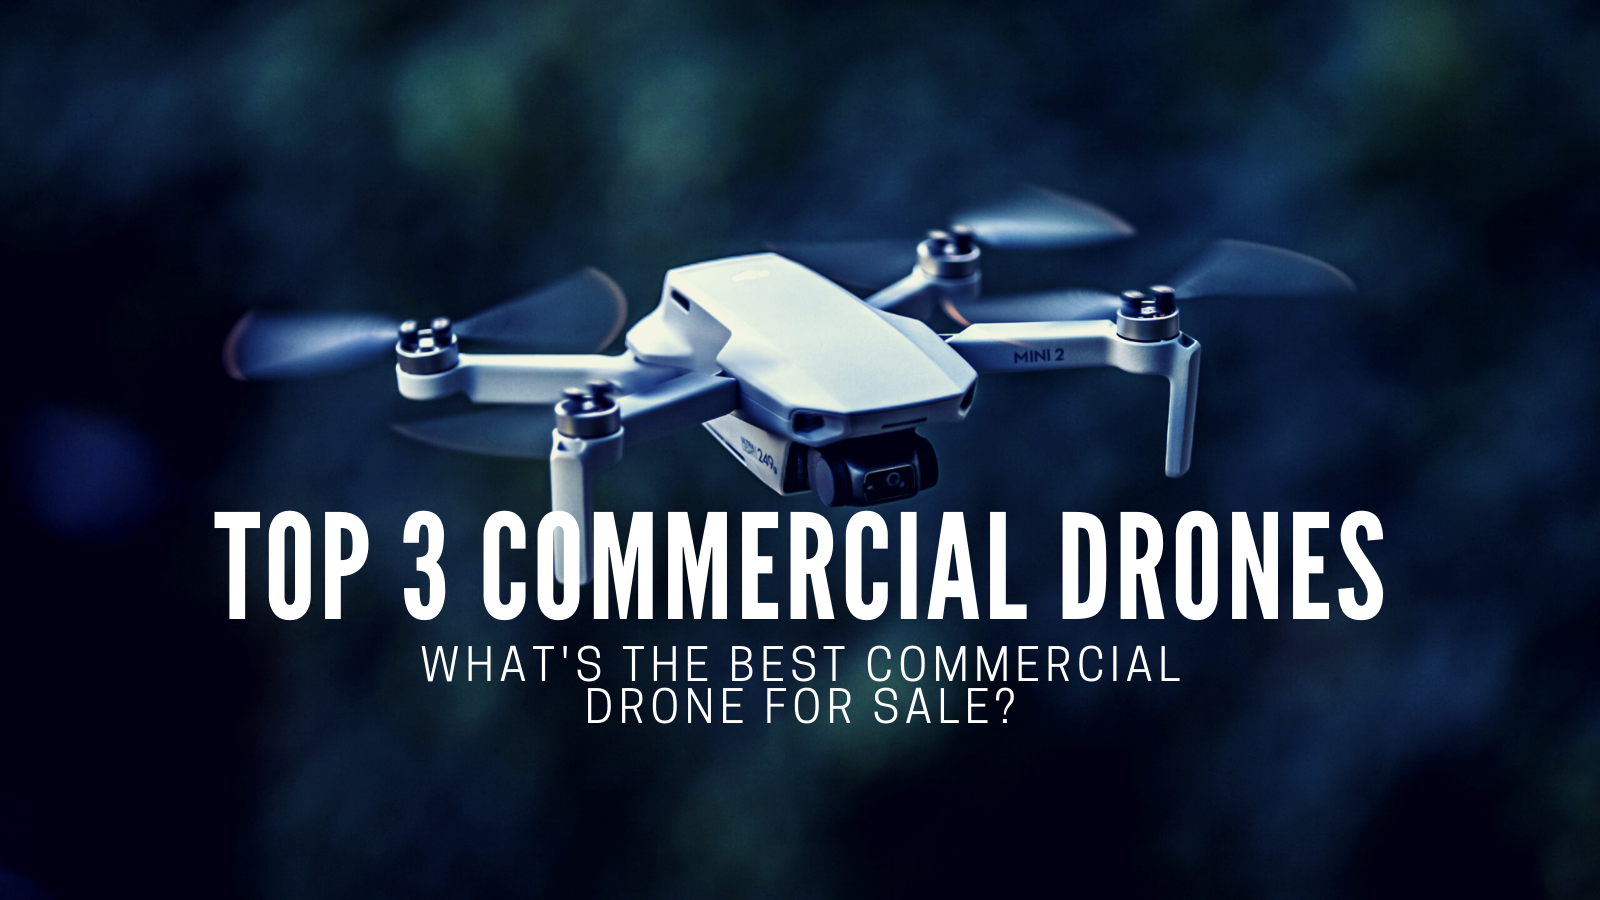 What Are The 3 Best Commercial Drones For Sale?